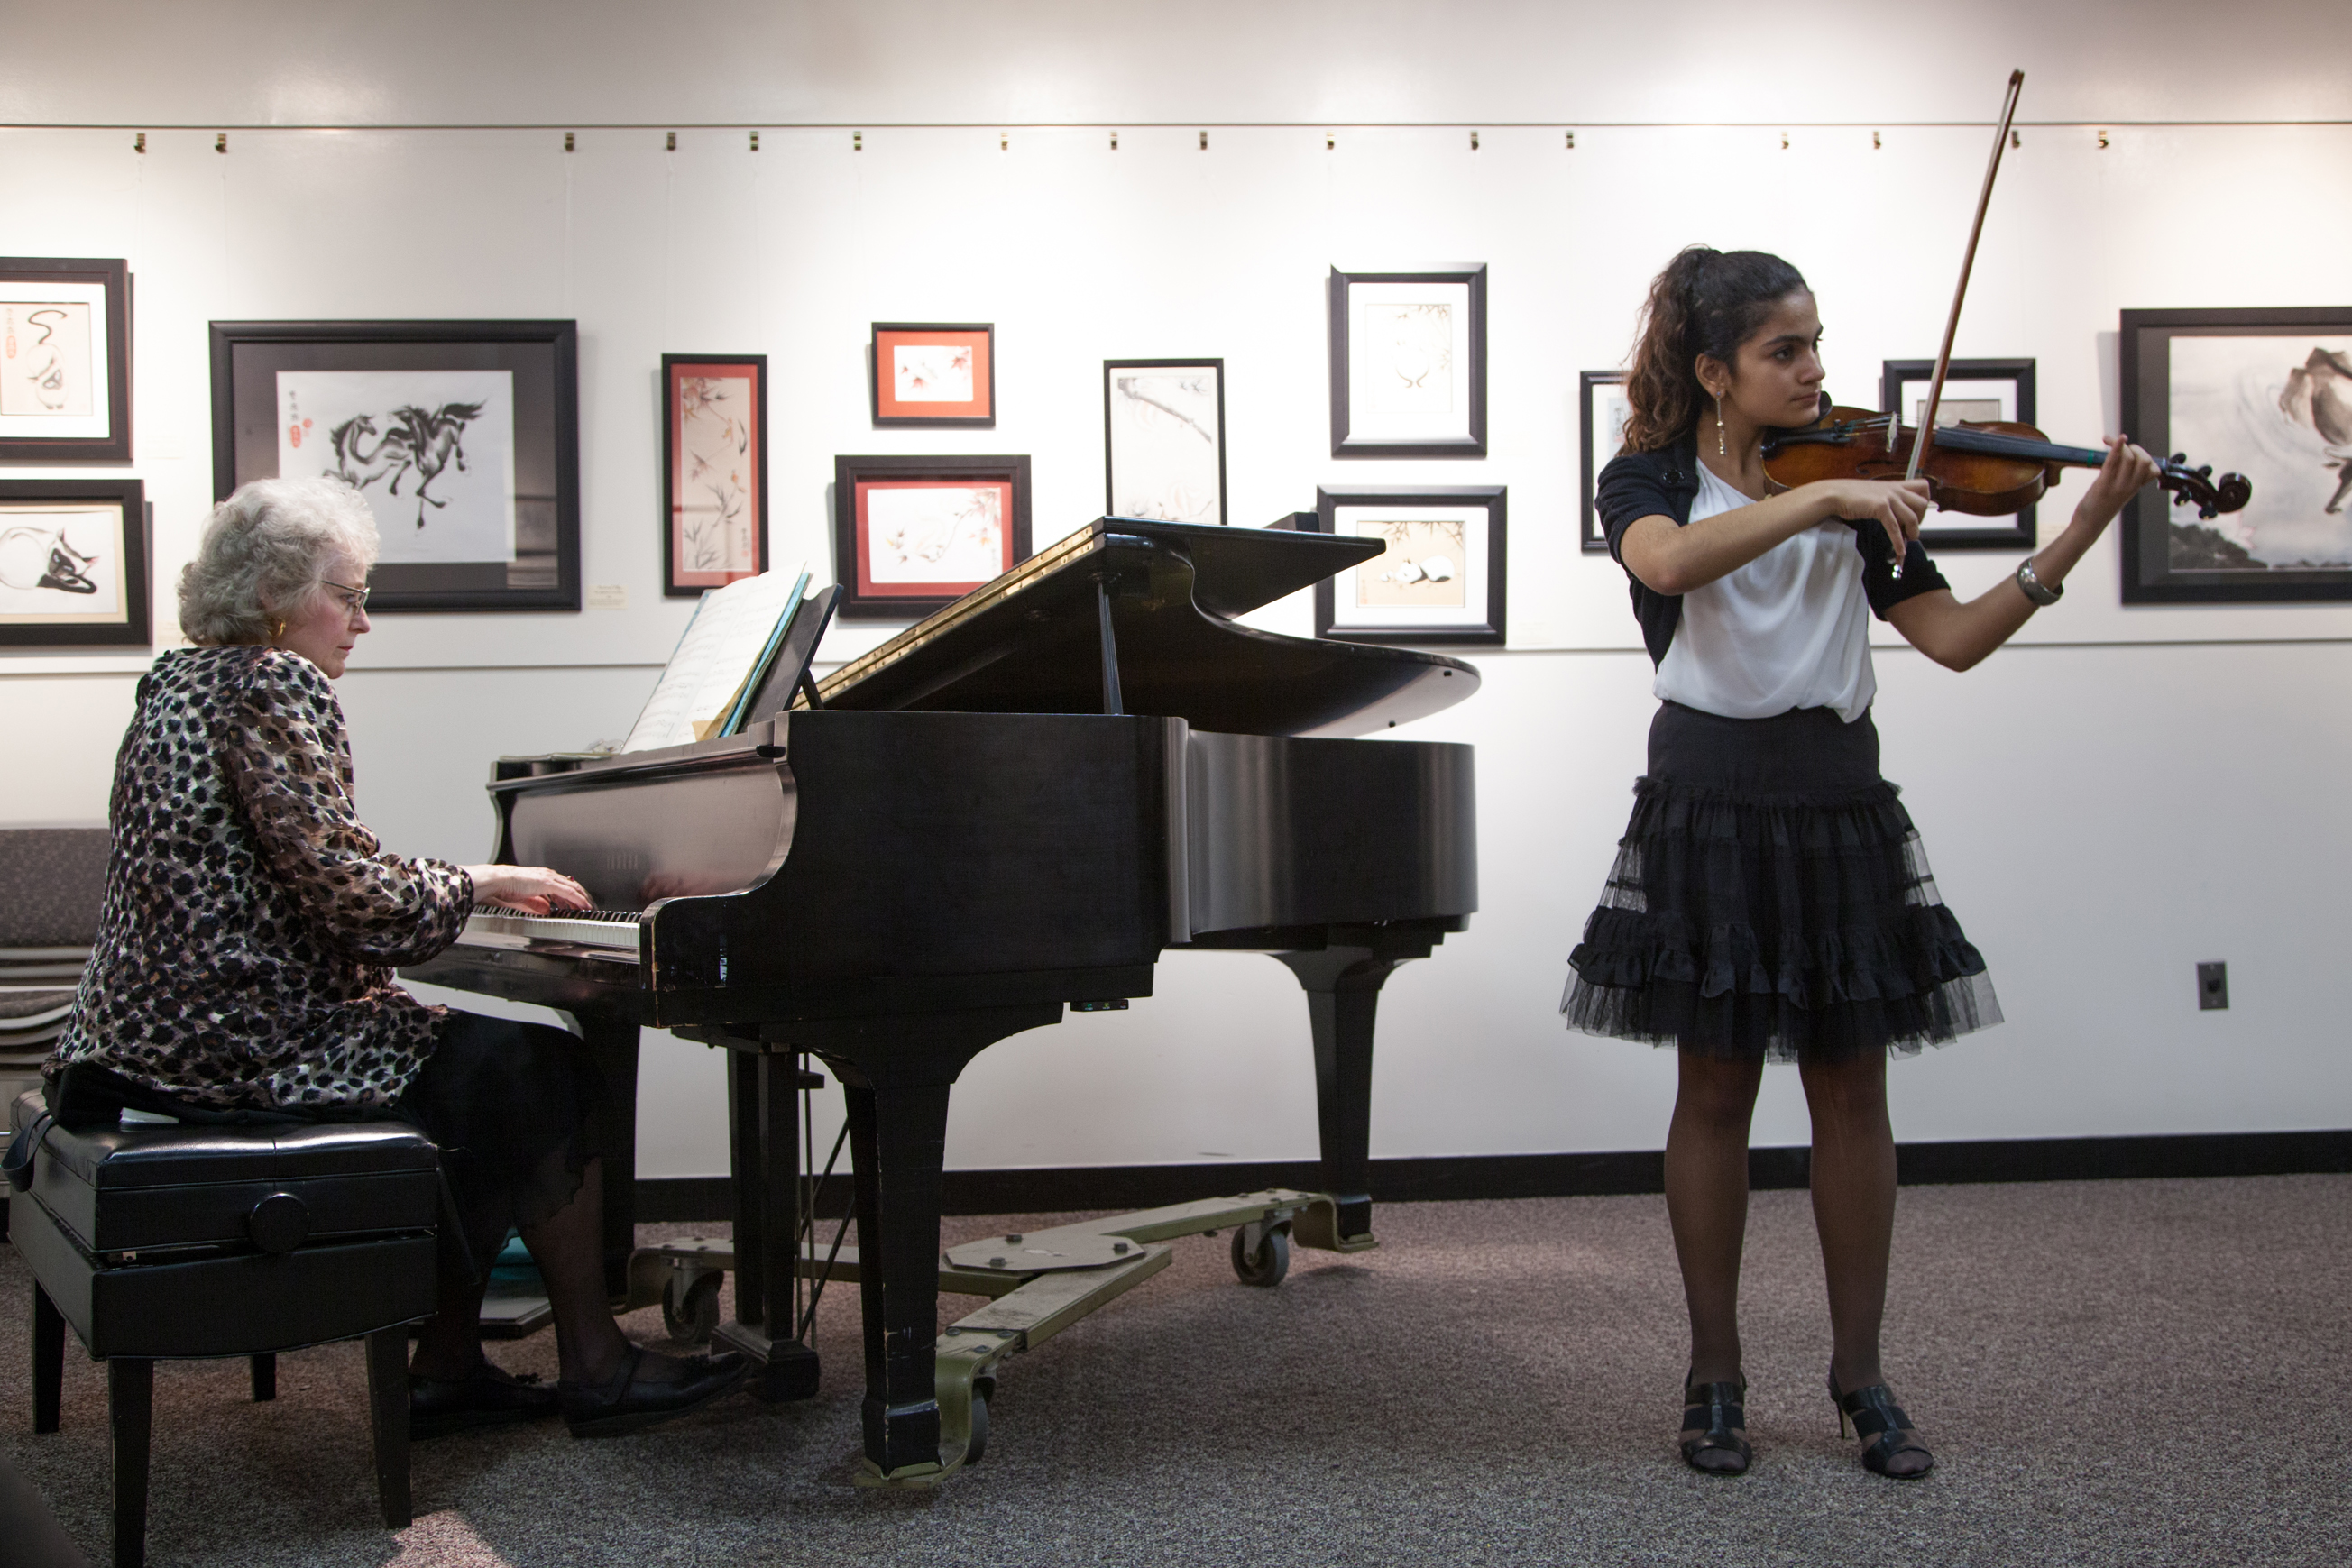 A female playing the violin next to a piano